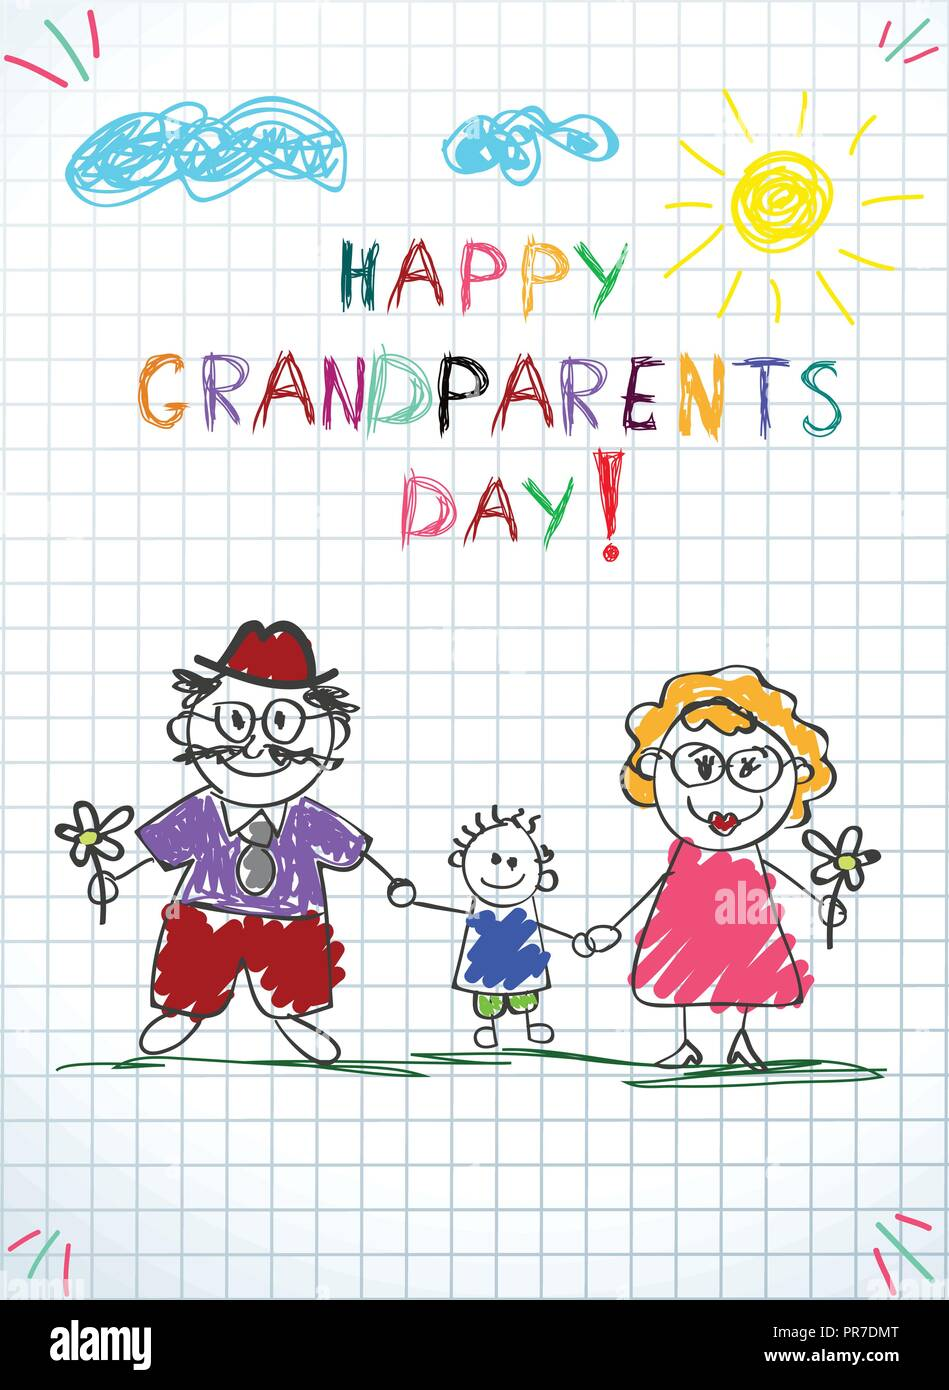 Children colorful hand drawn vector greeting card with grandpa children colorful hand drawn vector greeting card with grandpa grandma and grandson together kids inscription happy grandparents day on notebook gri m4hsunfo